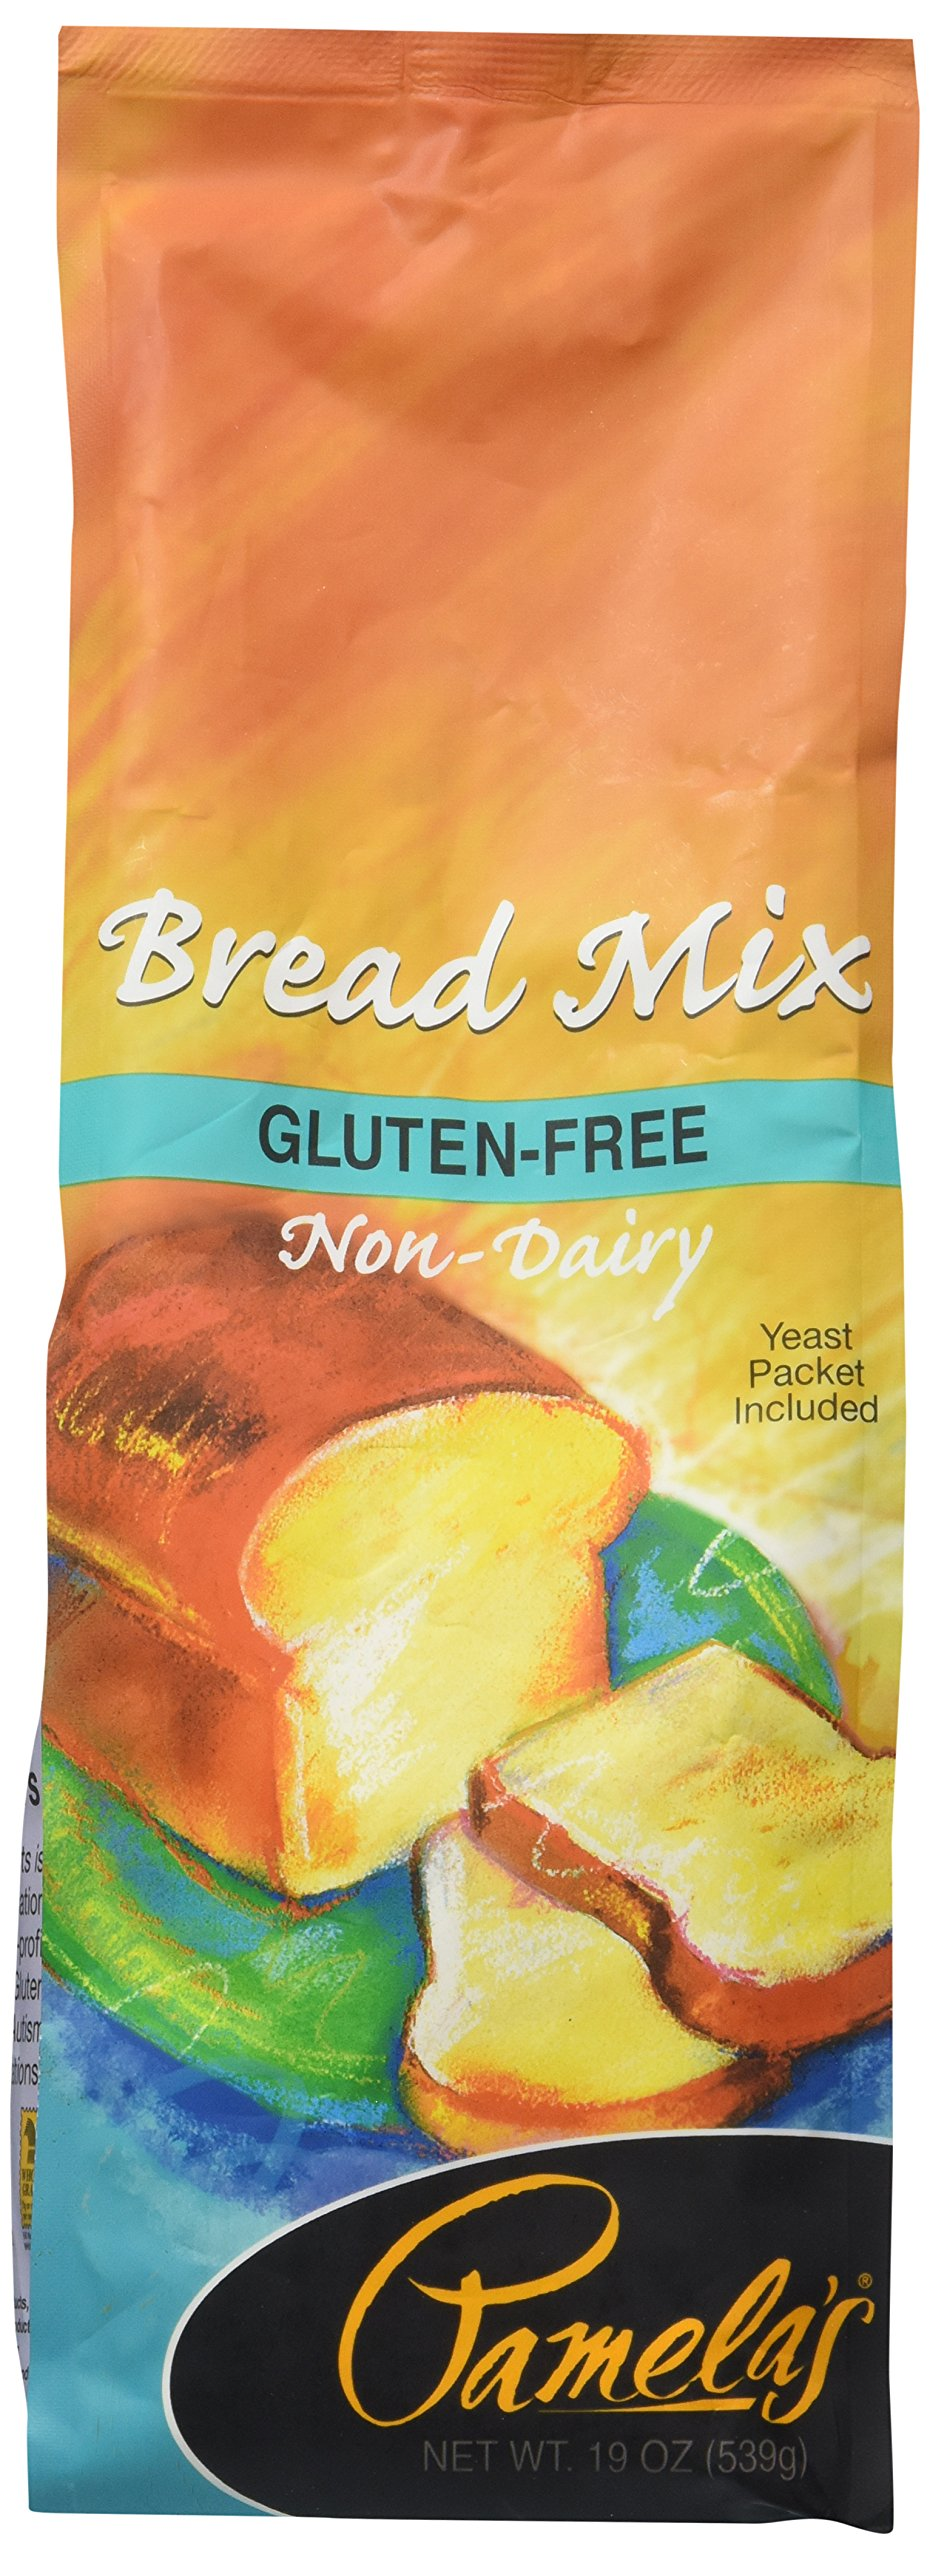 Pamela's Products Wheat-Free & Gluten-Free, Amazing Bread Mix, 19-Ounce Package